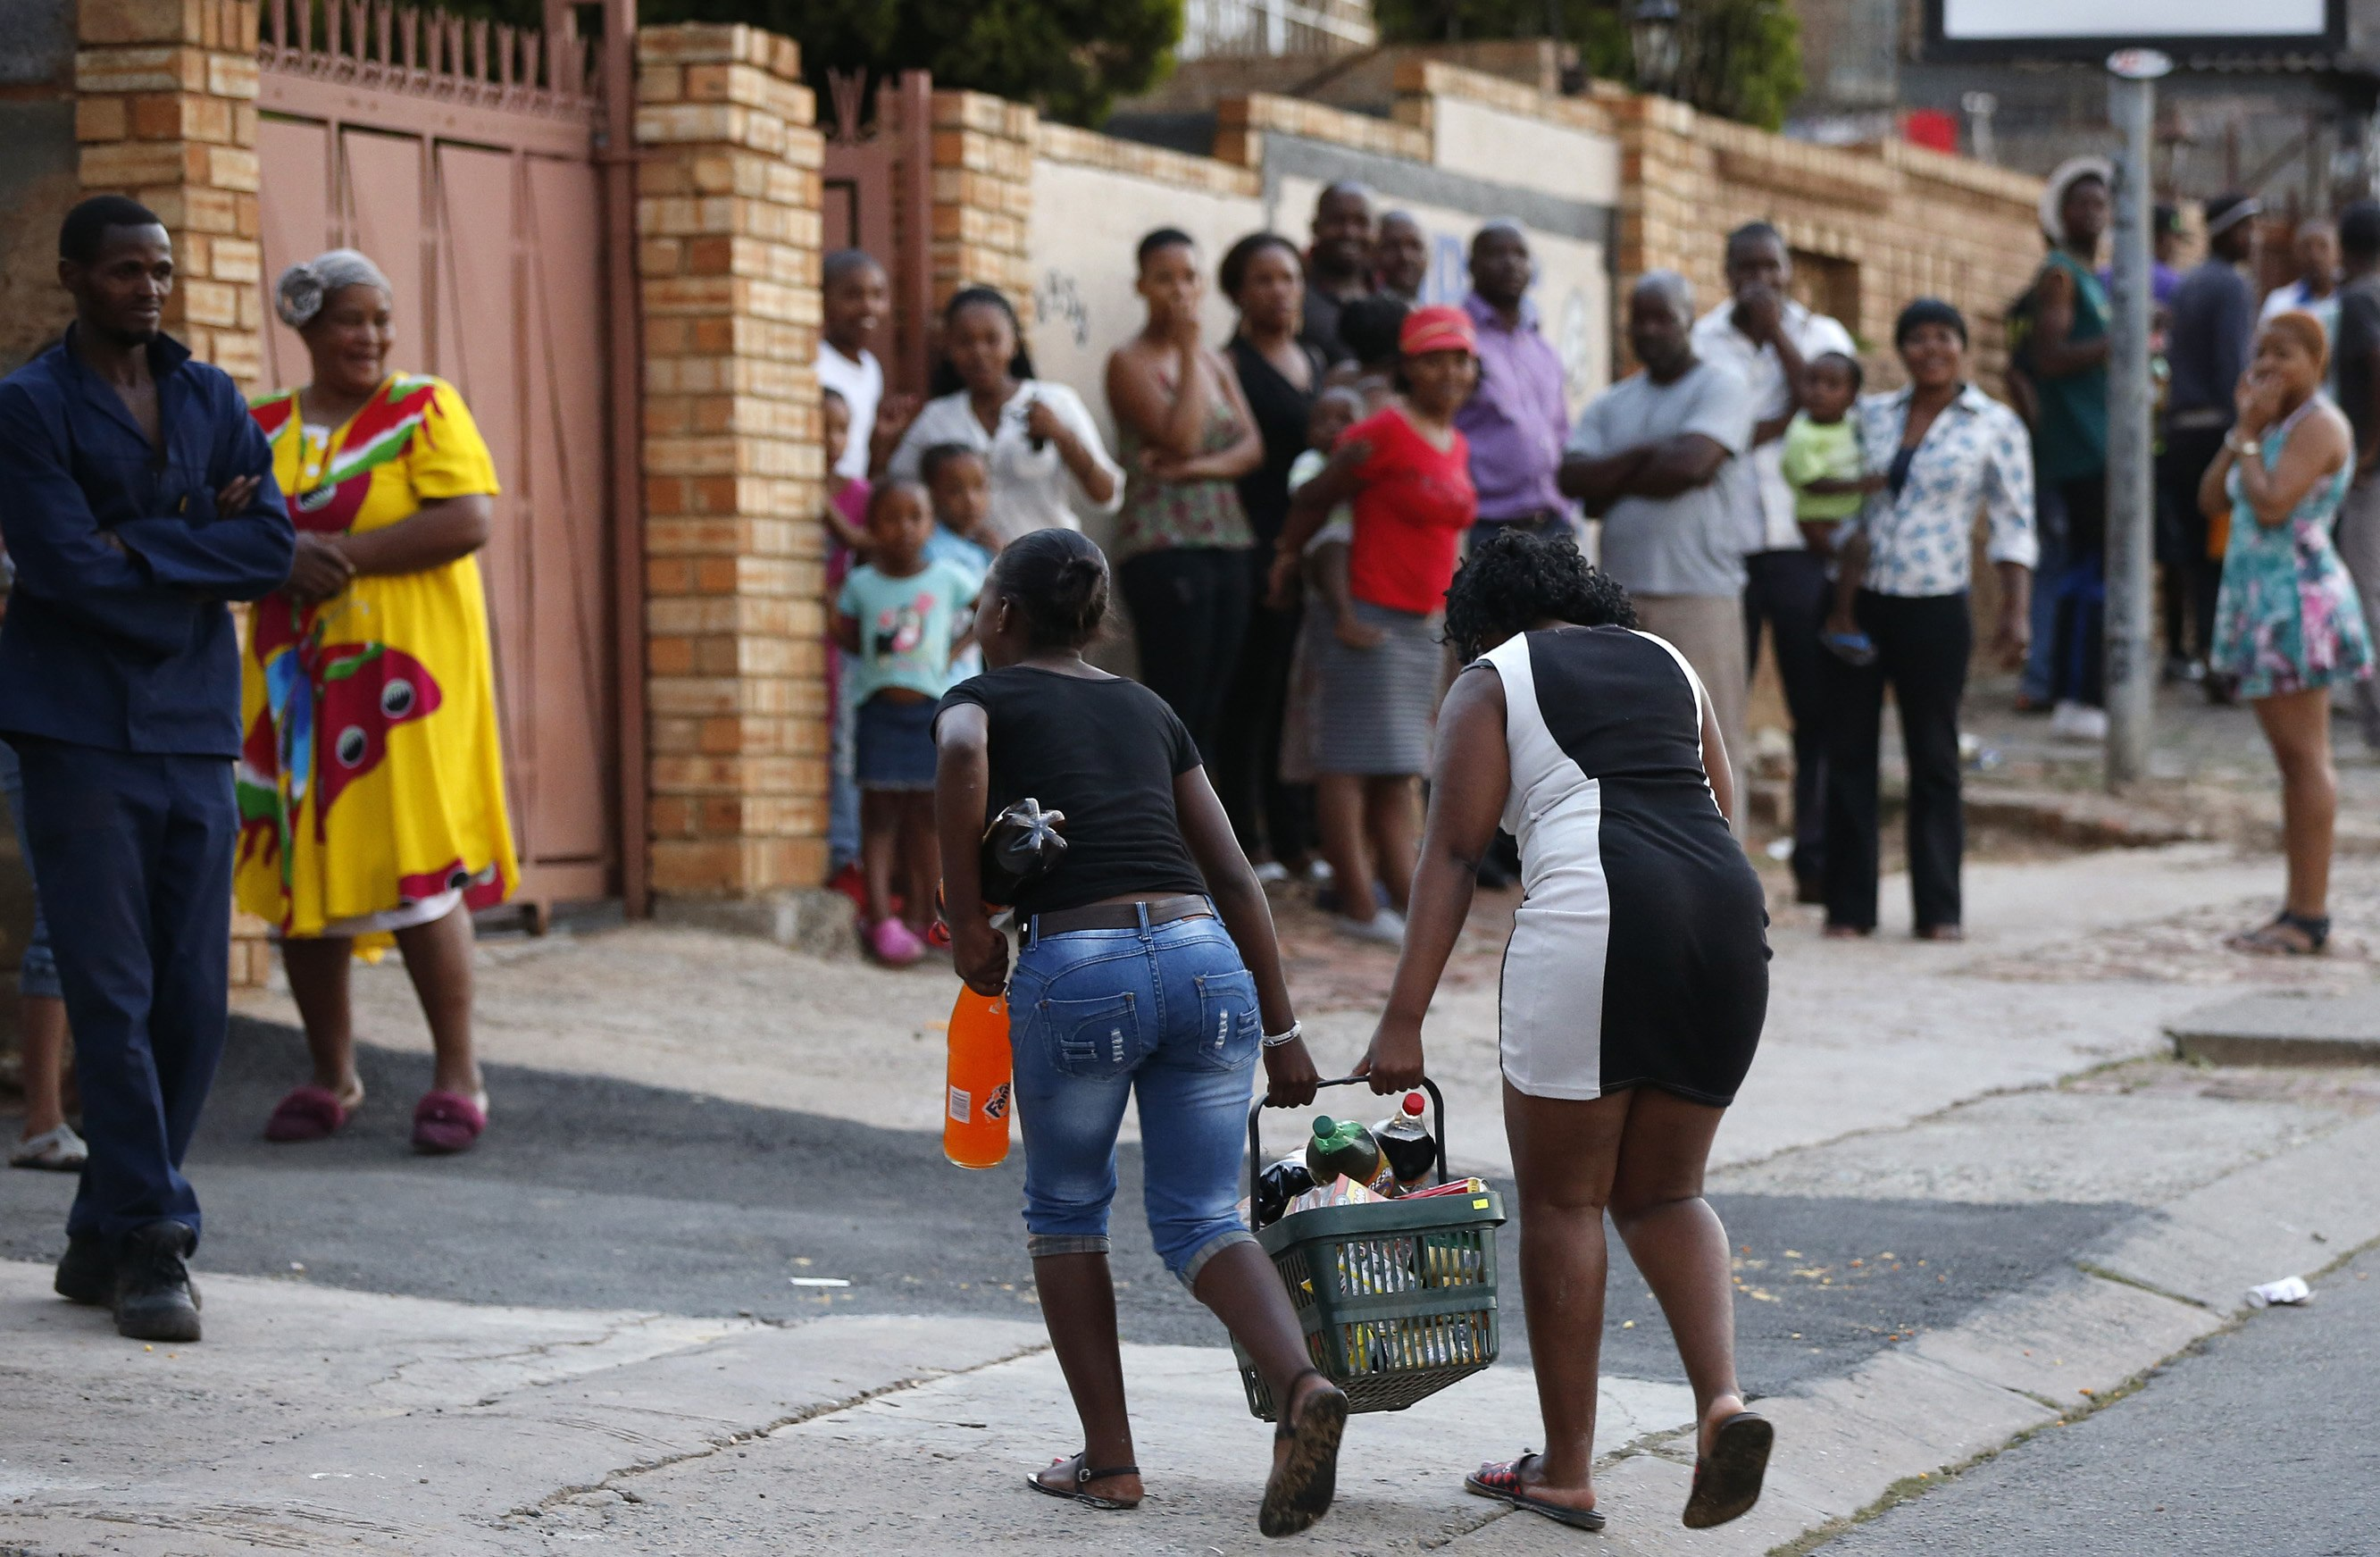 Locals look on as young women run with items from a shop believed to be owned by a foreigner, in Soweto